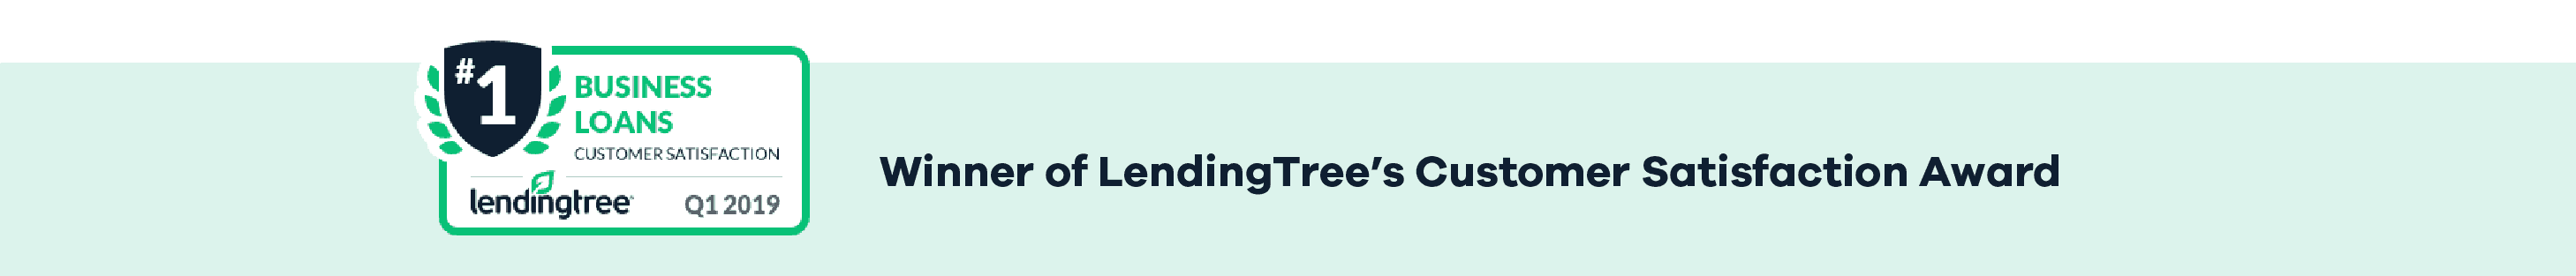 lendingtree-customer-satisfaction